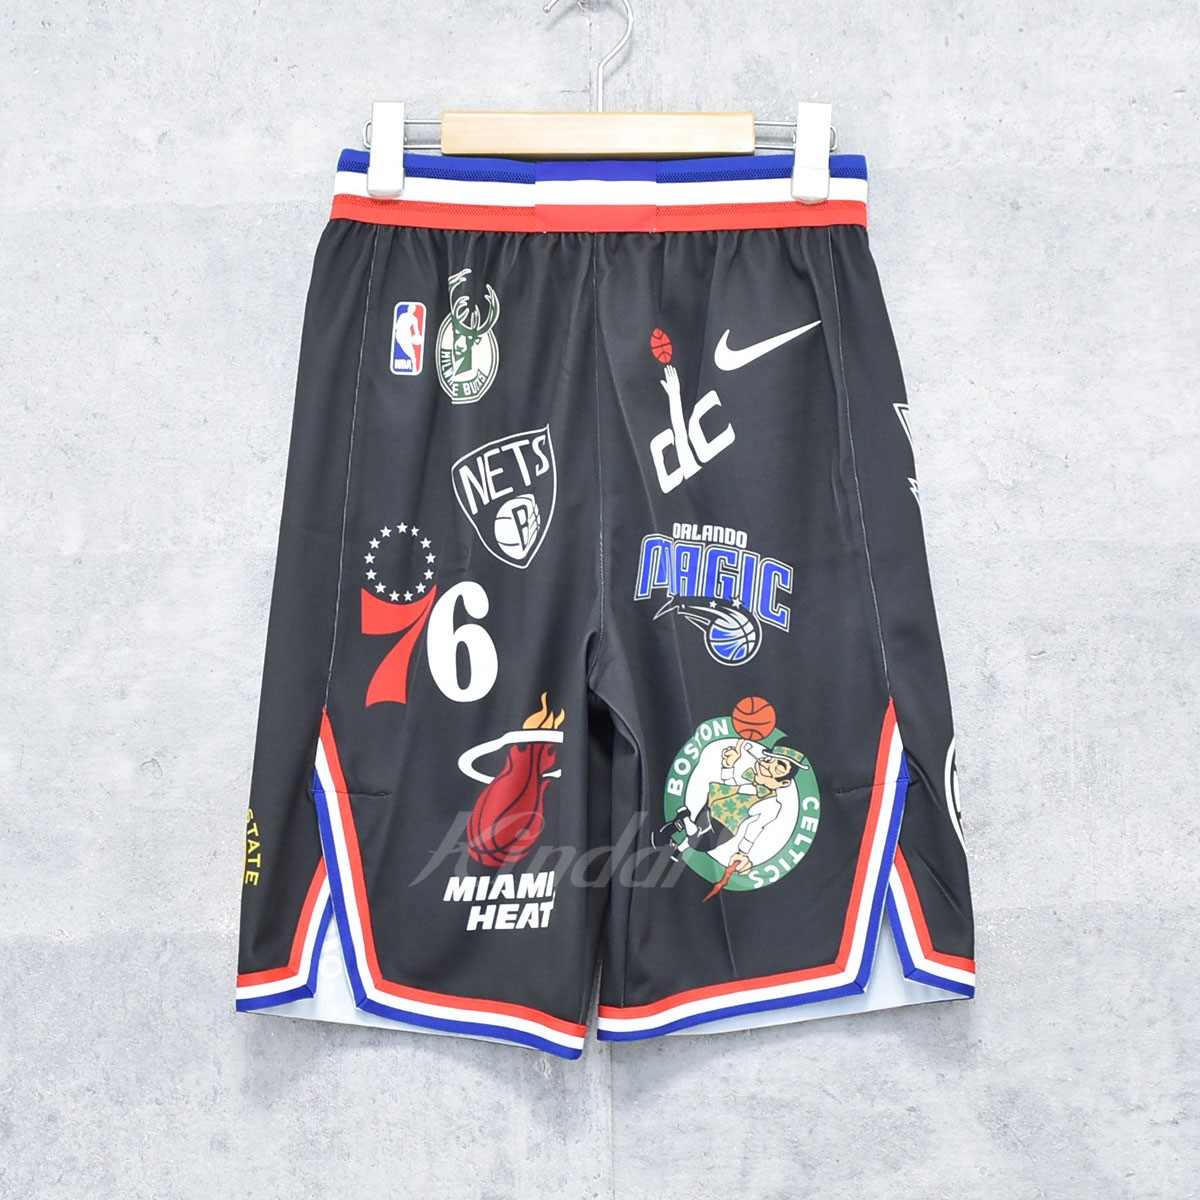 【中古】SUPREME×NIKE 18SS NBA TEAMS AUTHENTIC SHORT  ハーフパンツ 【送料無料】 【189852】 【KIND1550】